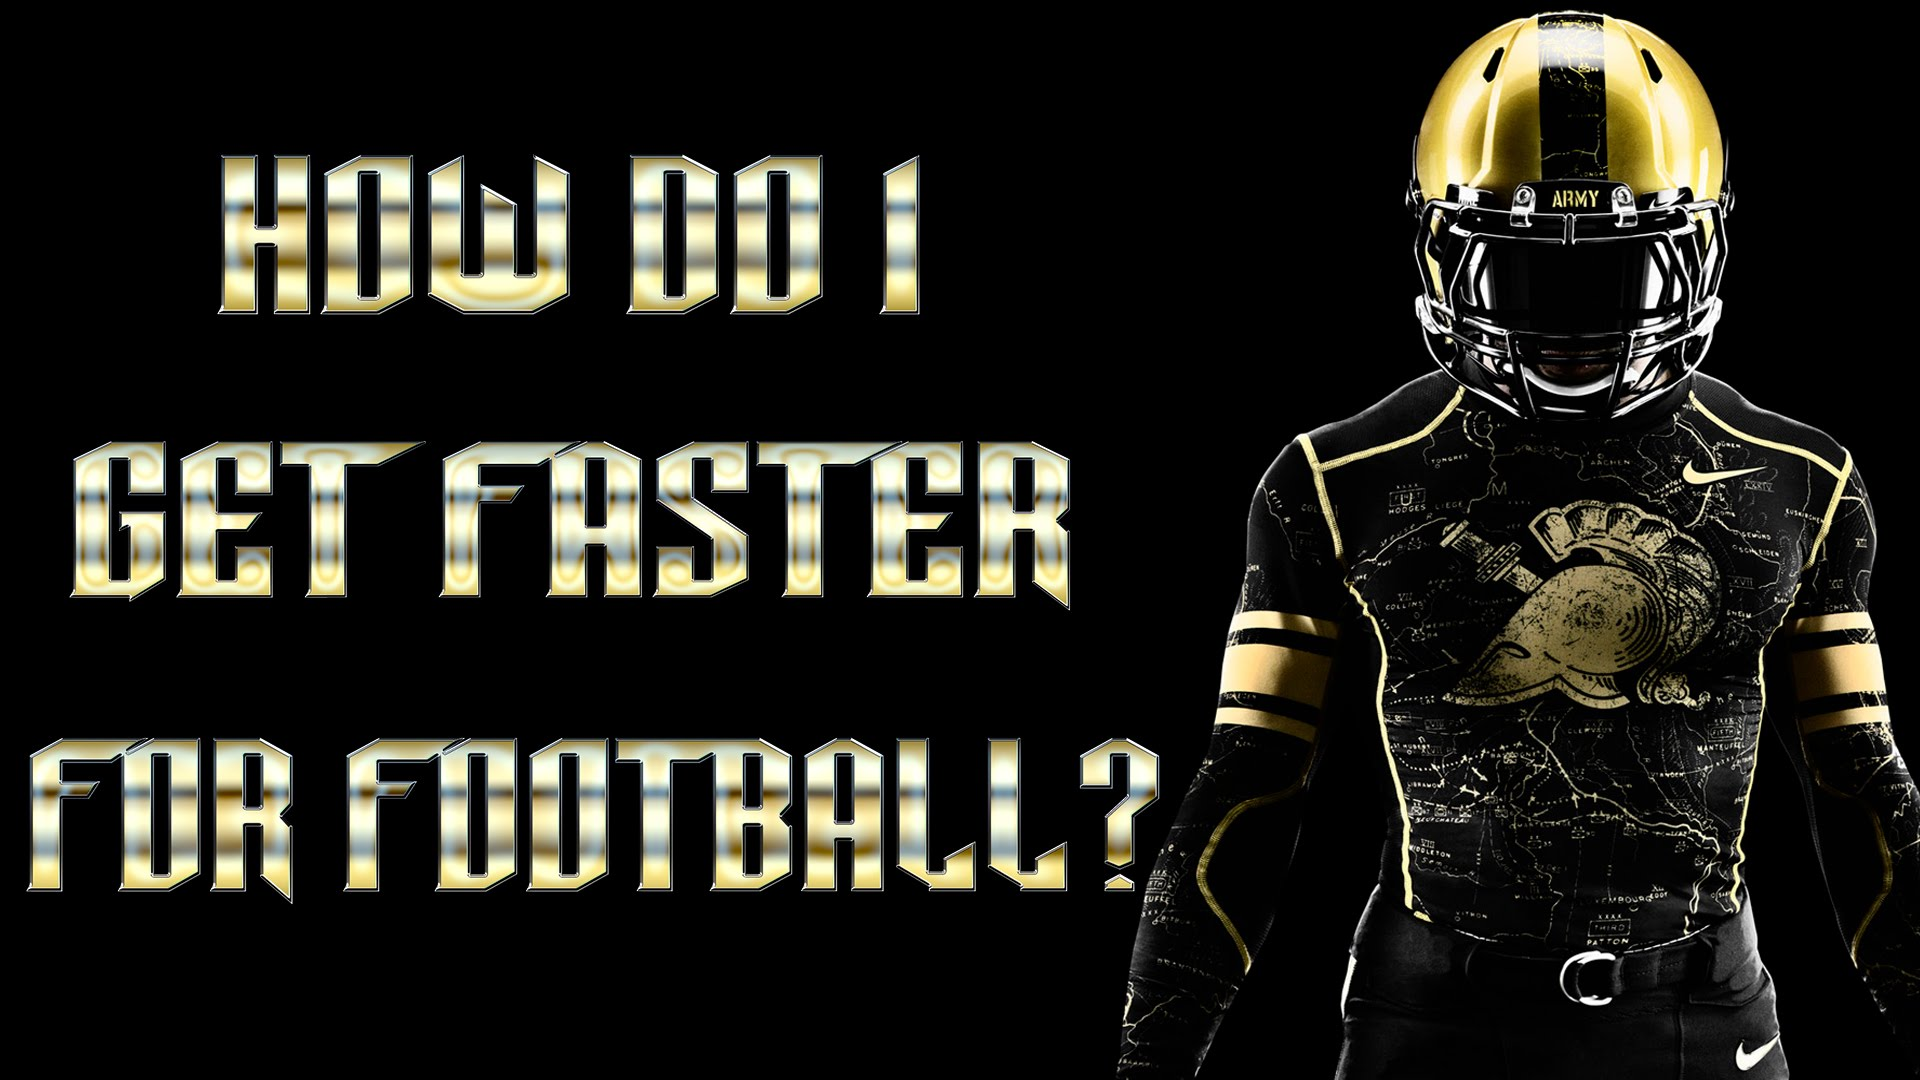 How Do I Get Faster For Football?